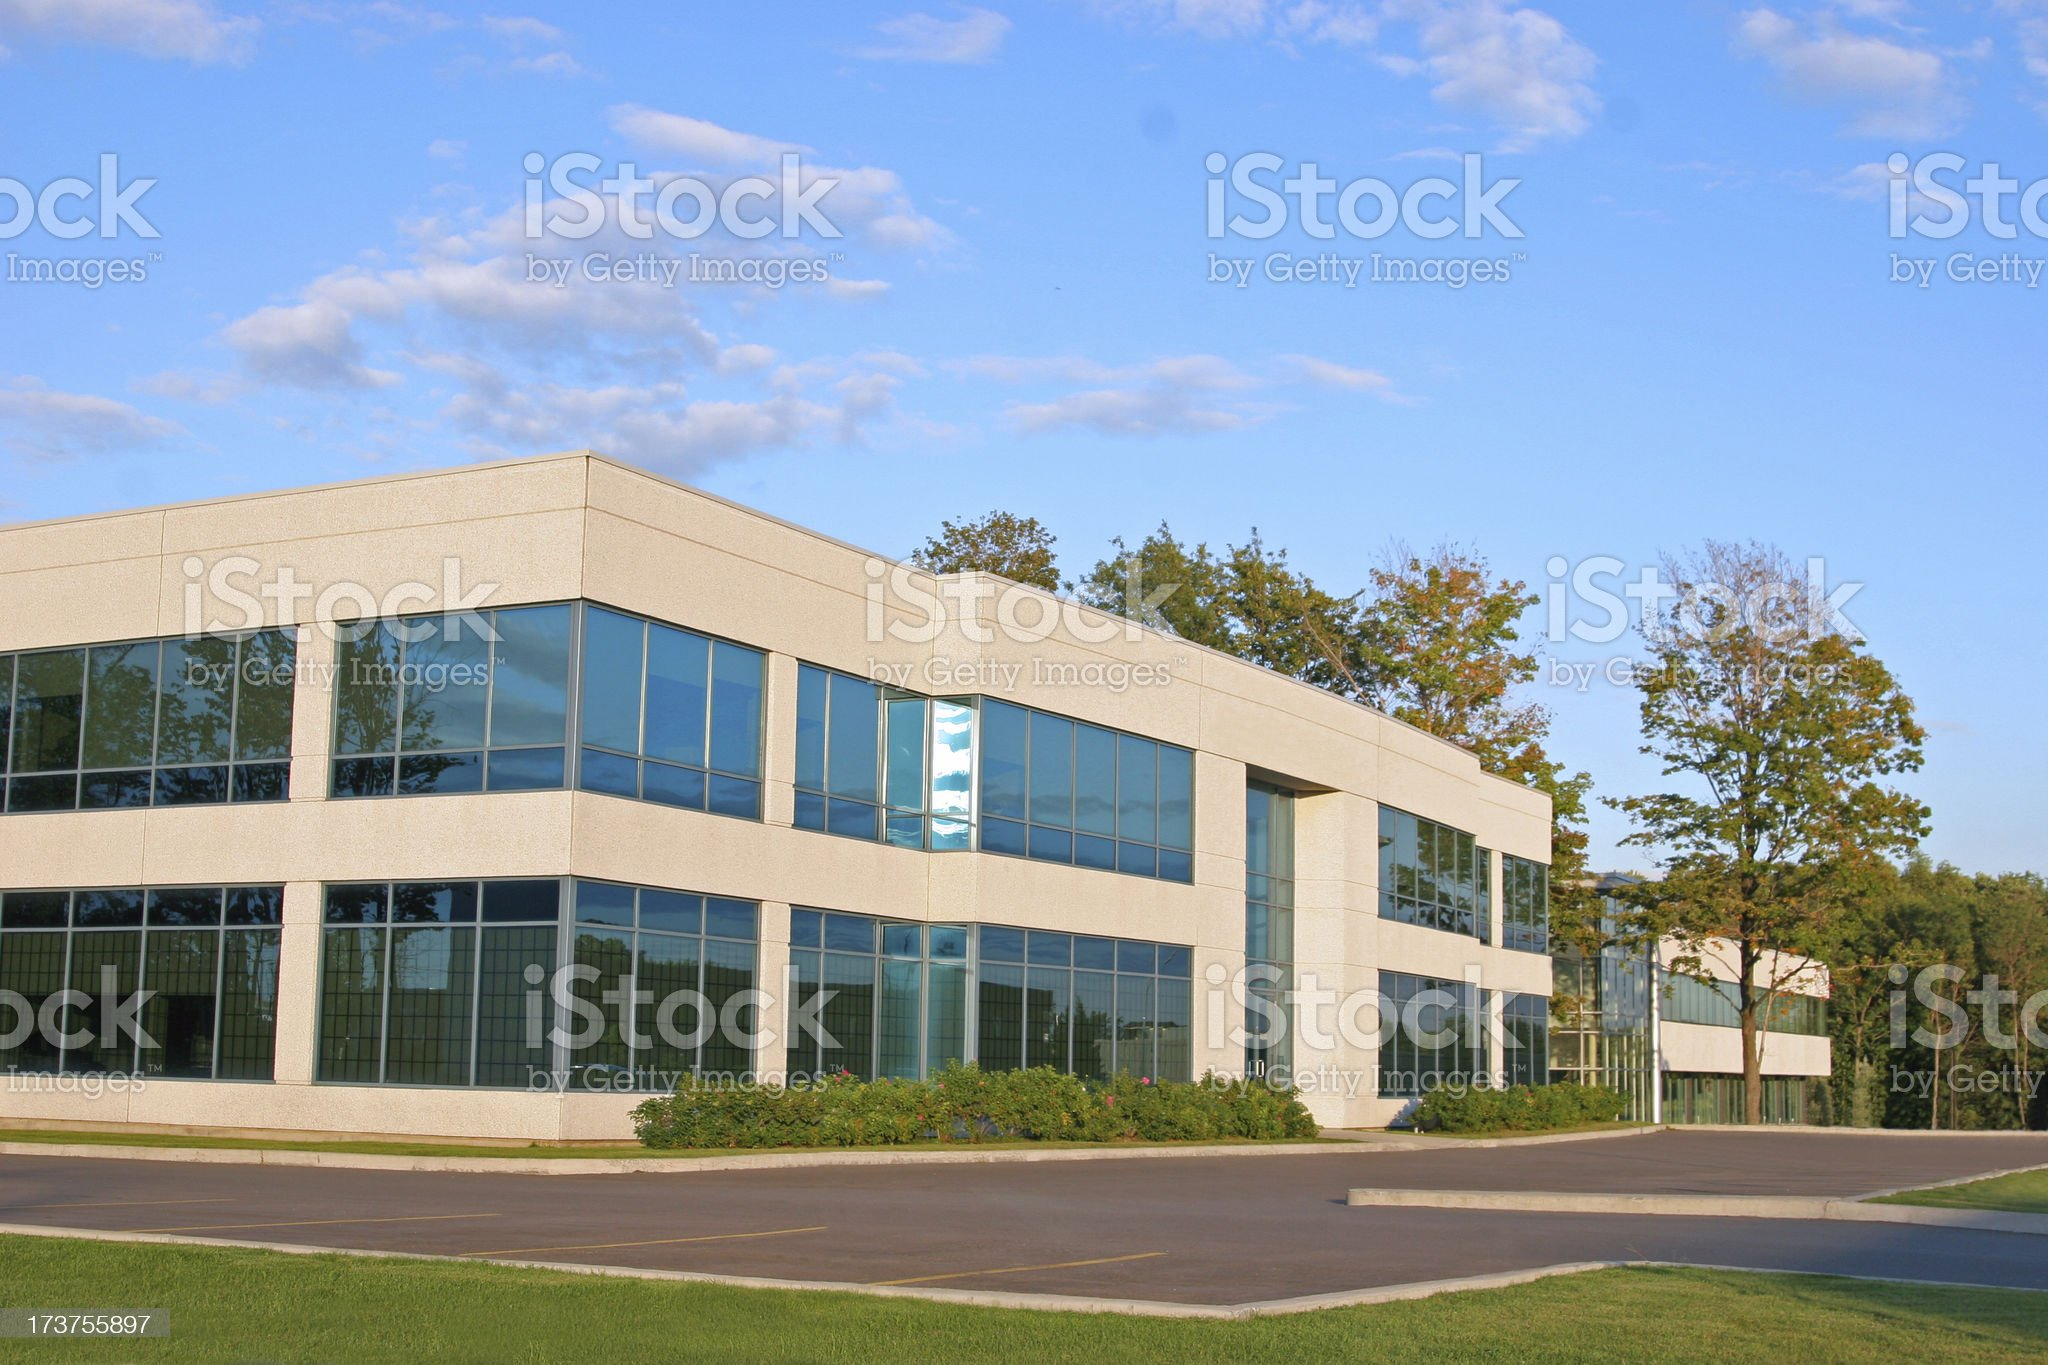 Premium Entreprise Building royalty-free stock photo